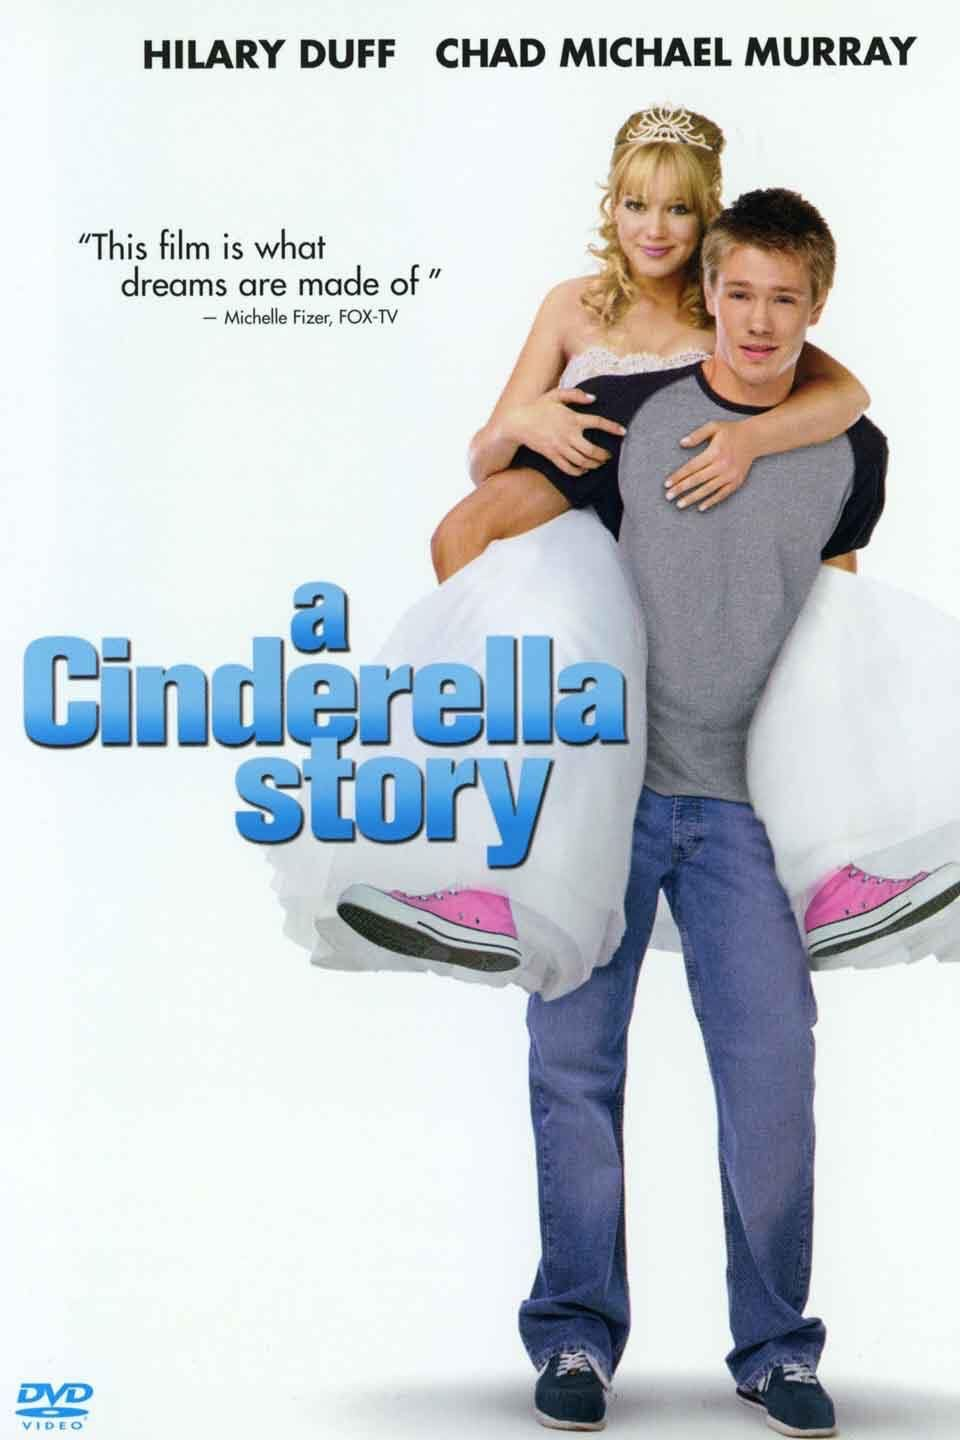 A cinderella story the movie revolves around two pen pals